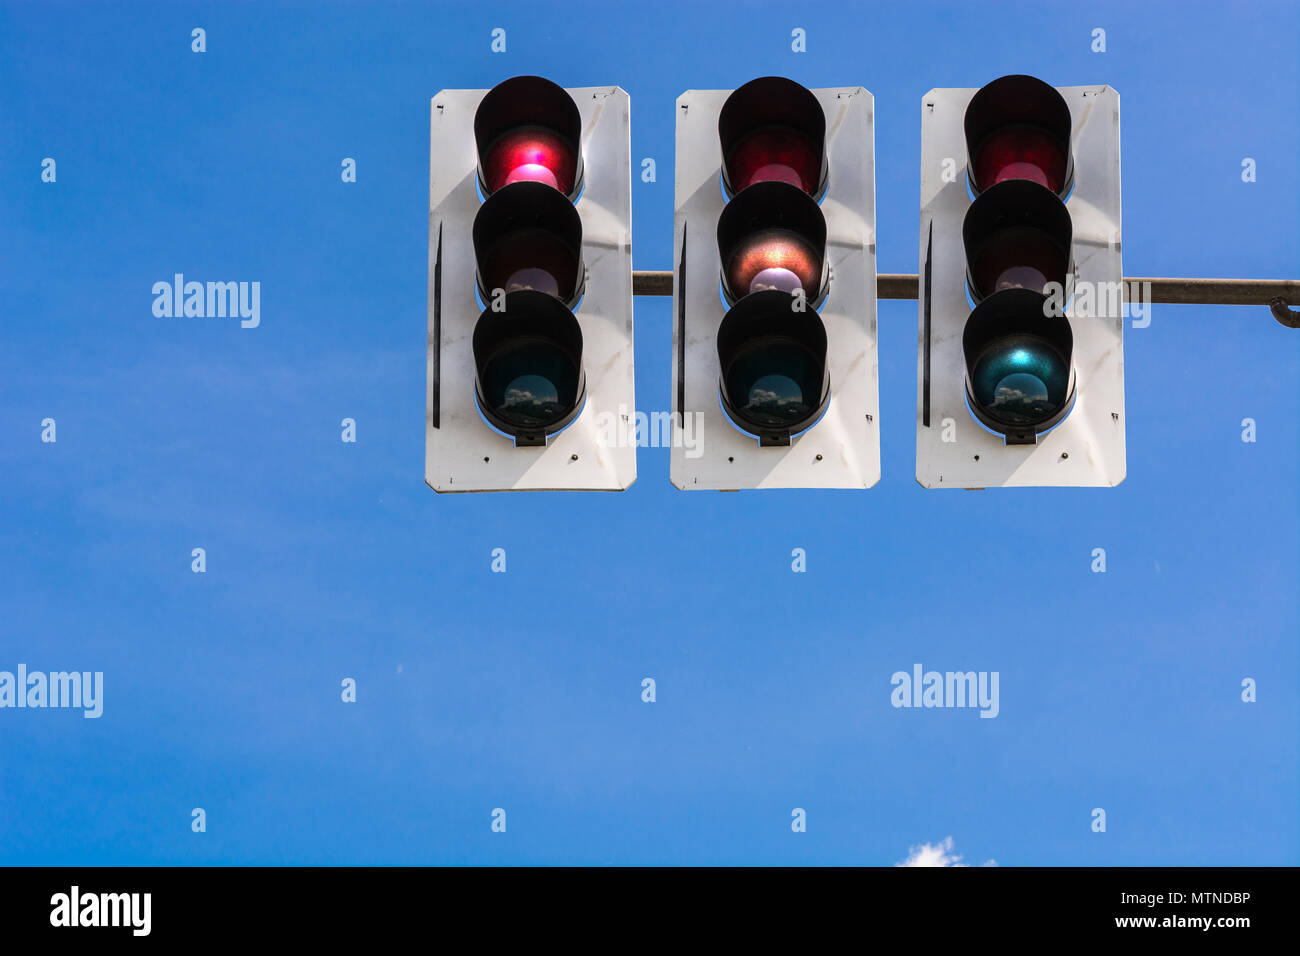 A traffic light and a surveillance camera on a pole mounted on the street. Stock Photo